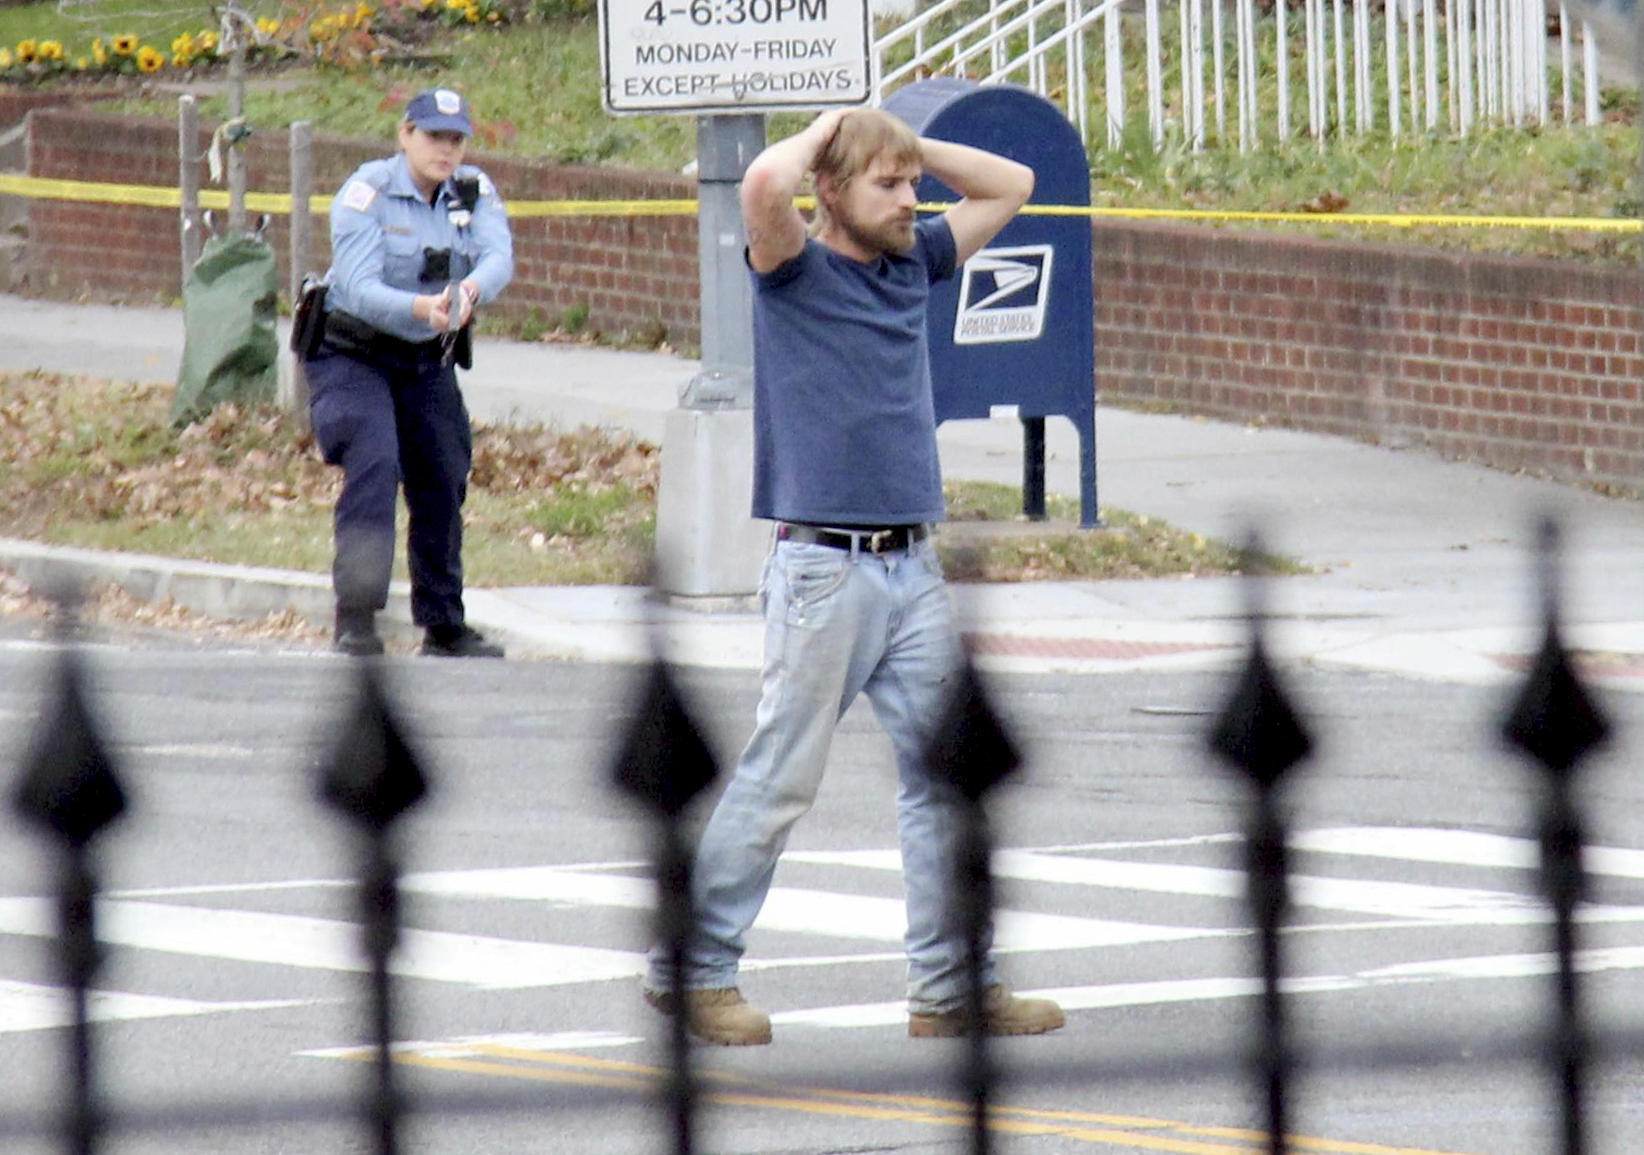 Pizzagate gunman recorded video for daughters, said he's